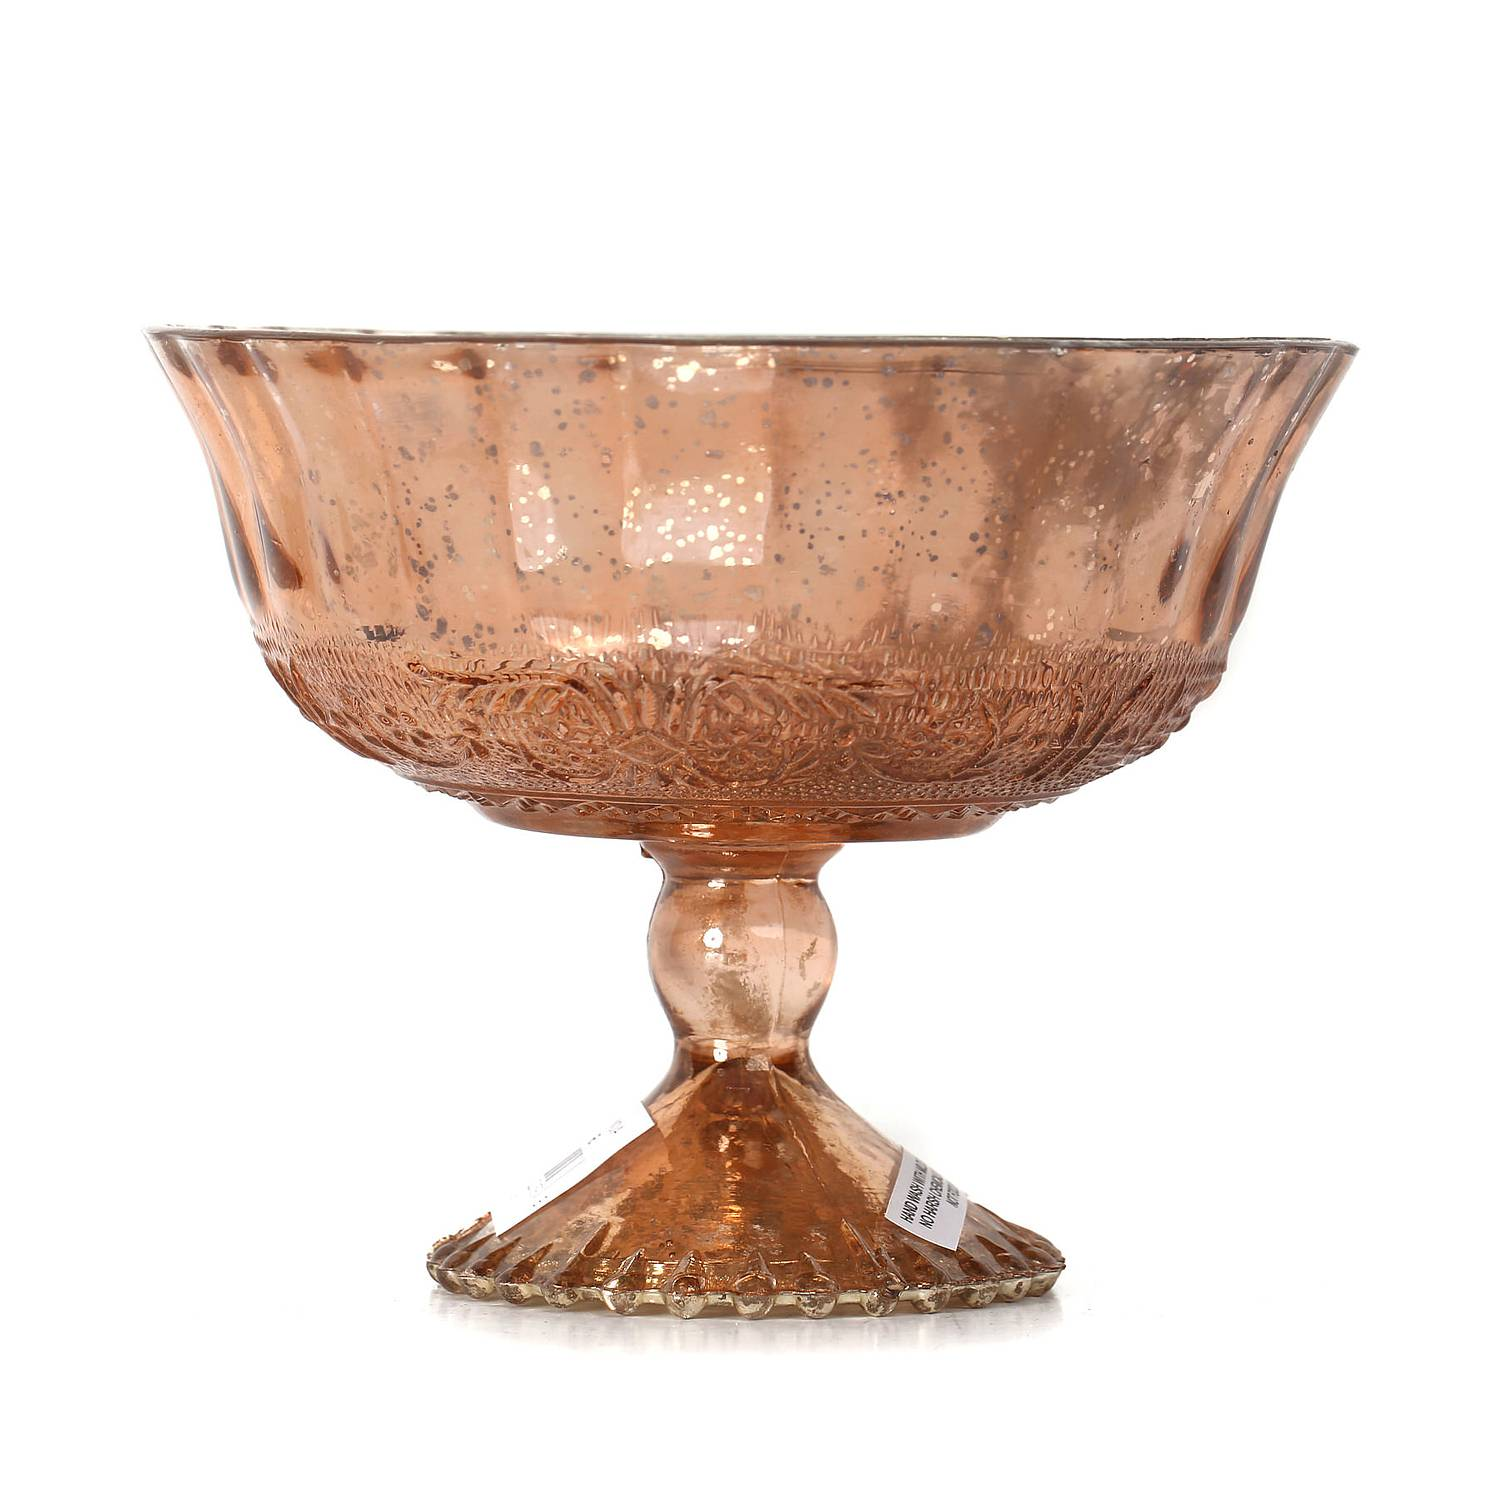 55 In H X 65 In D Copper Mercury Glass Embossed Pedestal Bowl